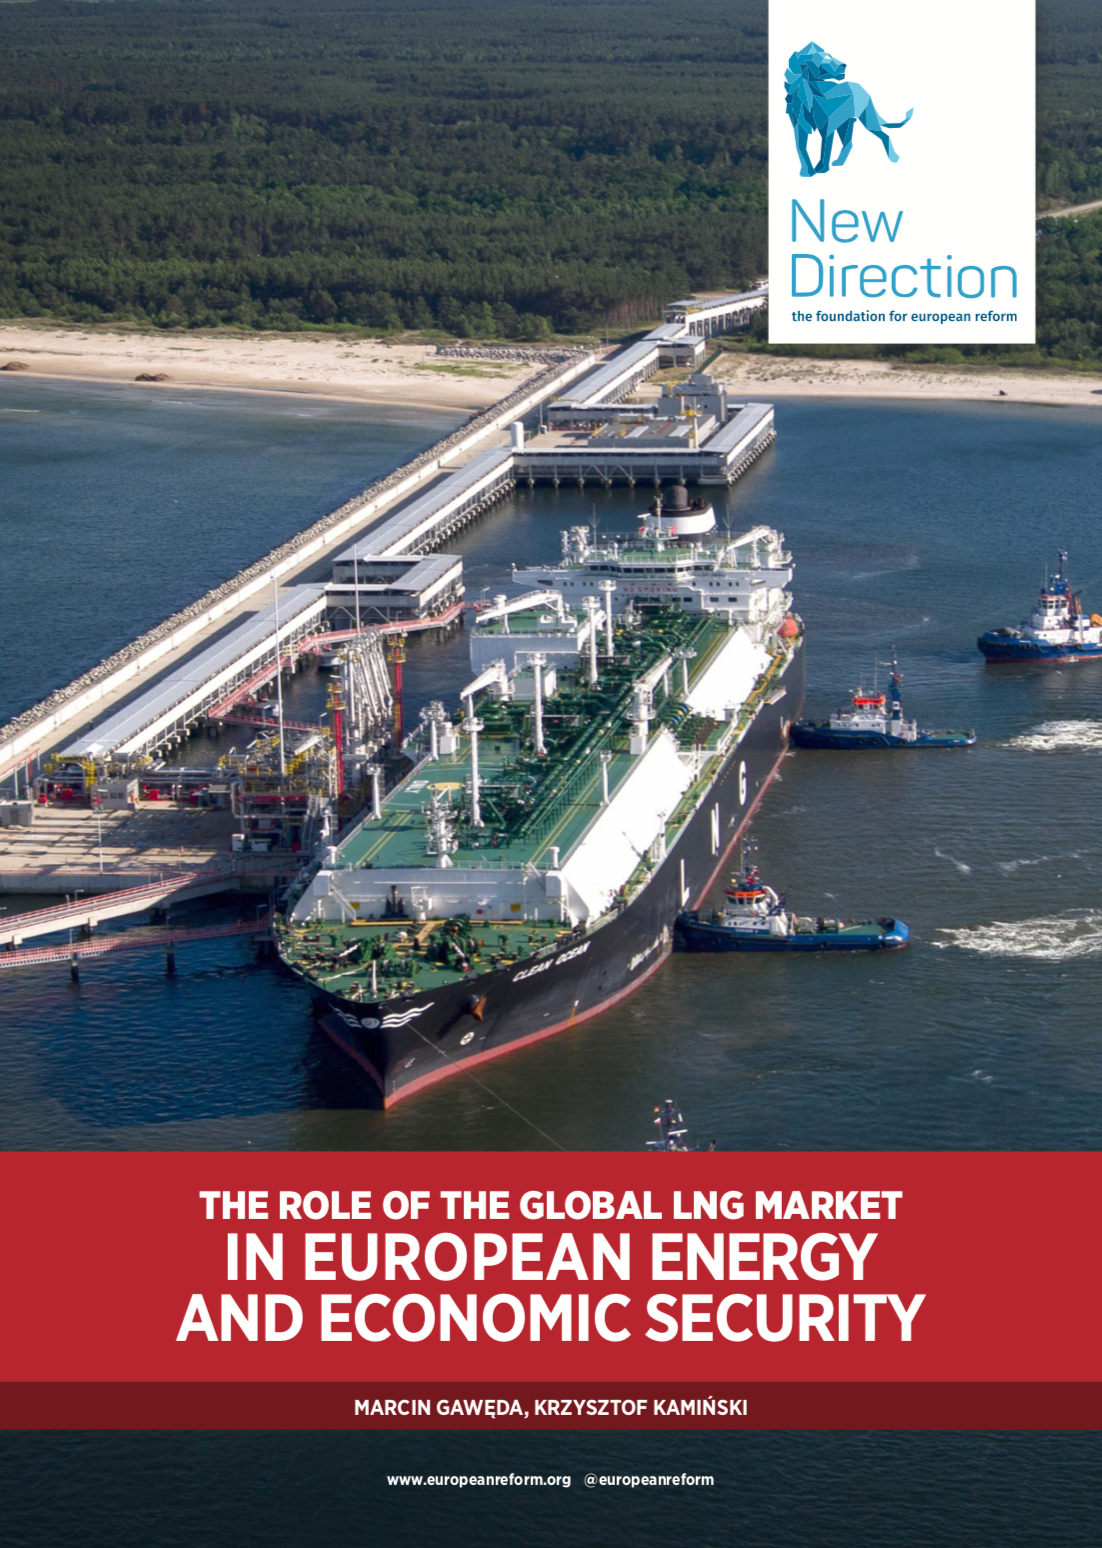 THE ROLE OF THE GLOBAL LNG MARKET IN EUROPEAN ENERGY AND ECONOMIC SECURITY